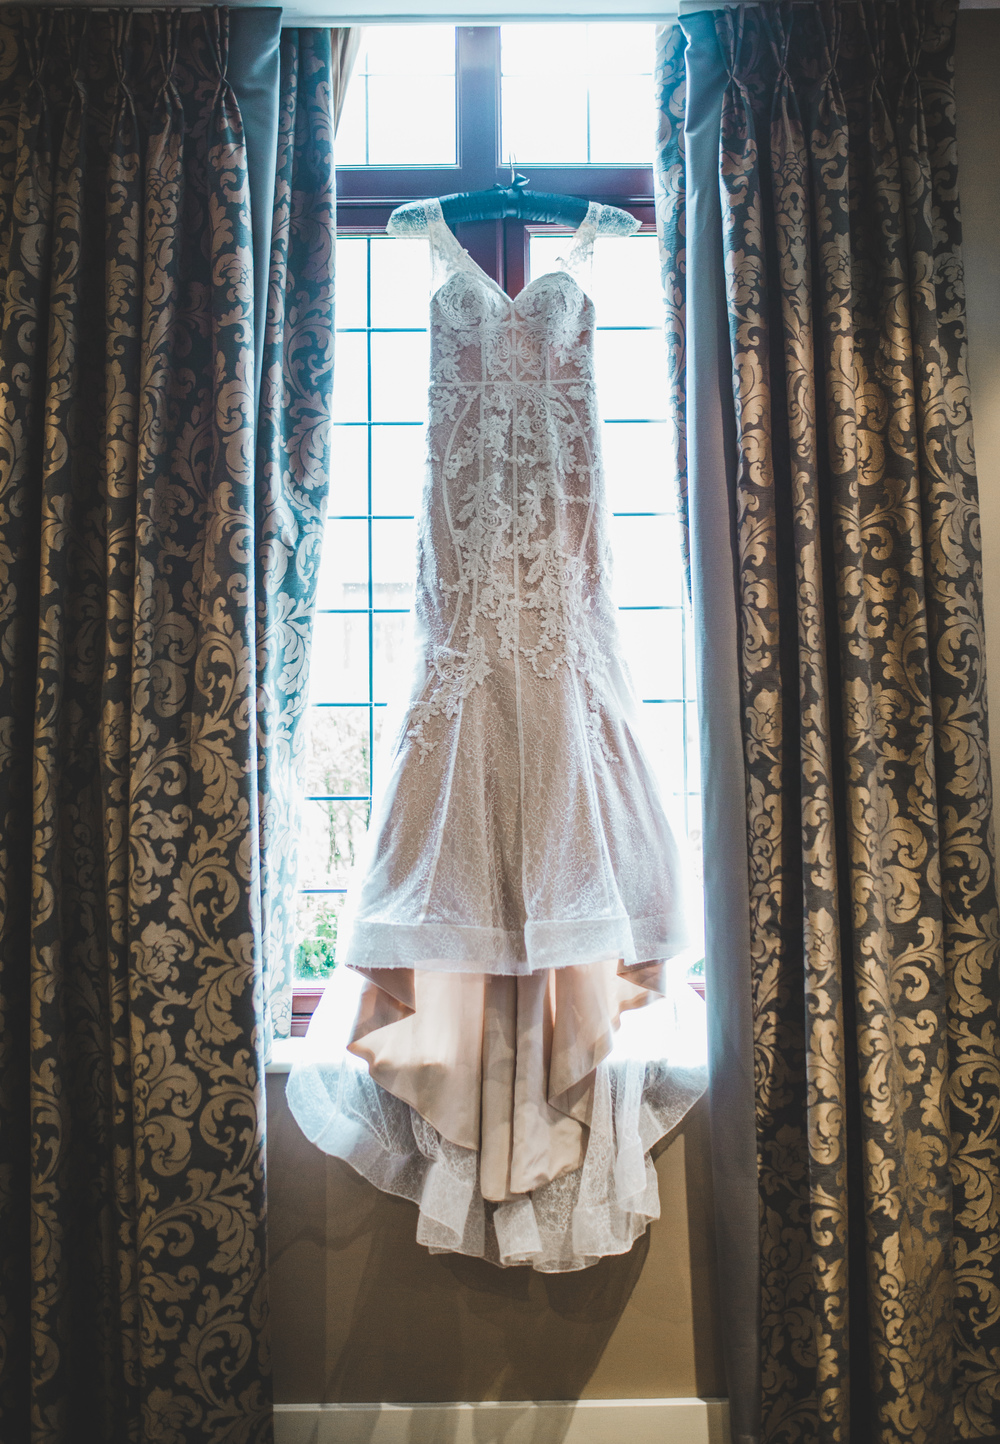 The beautiful bride gown for the Cheshsire wedding.